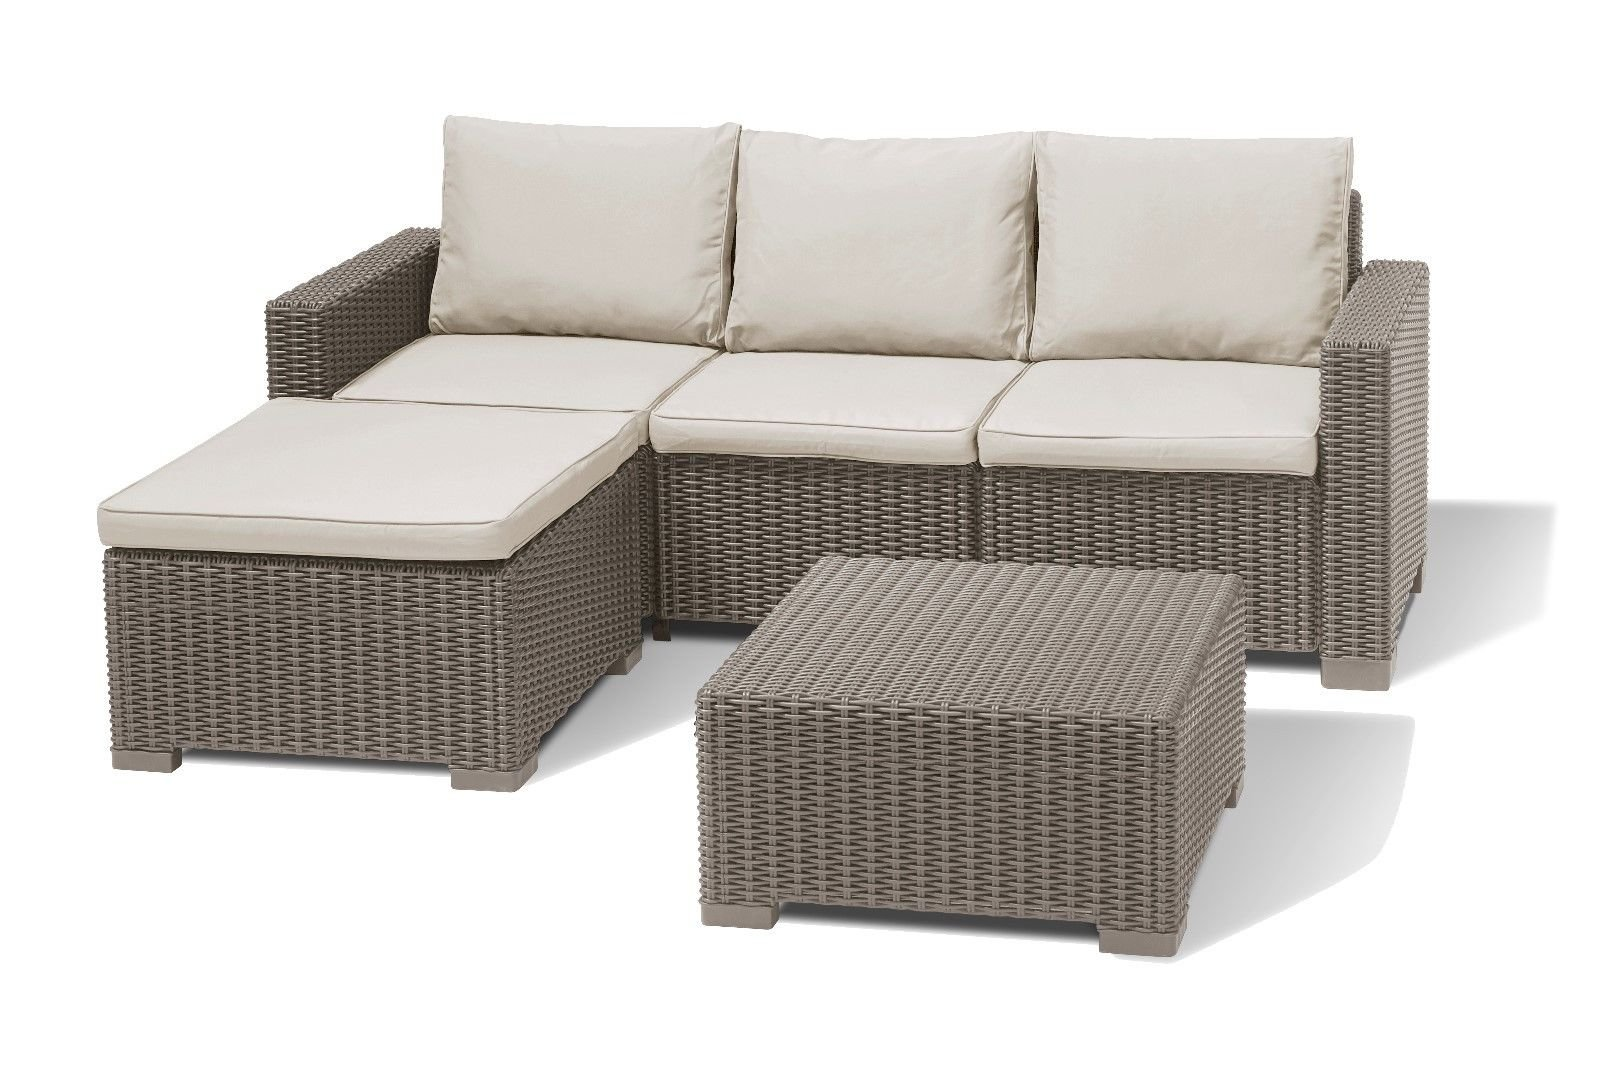 Allibert Keter California Rattan Corner Set Cappuccino 9-Seater Sofa With  Table & Free Delivery